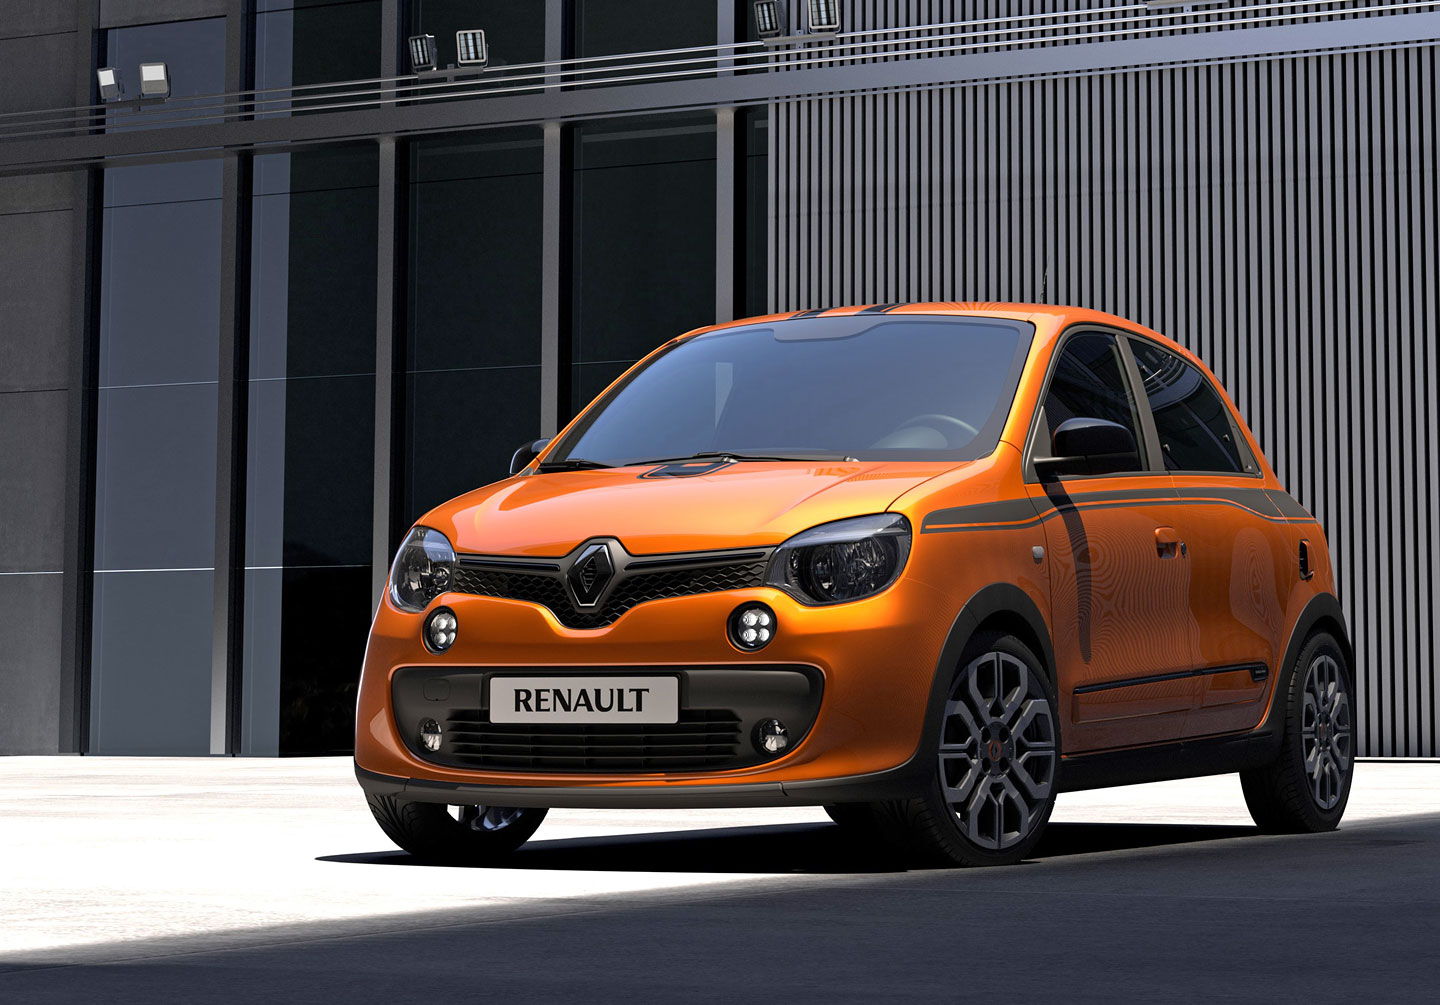 renault twingo gt sportovn kabelka m 110 kon. Black Bedroom Furniture Sets. Home Design Ideas